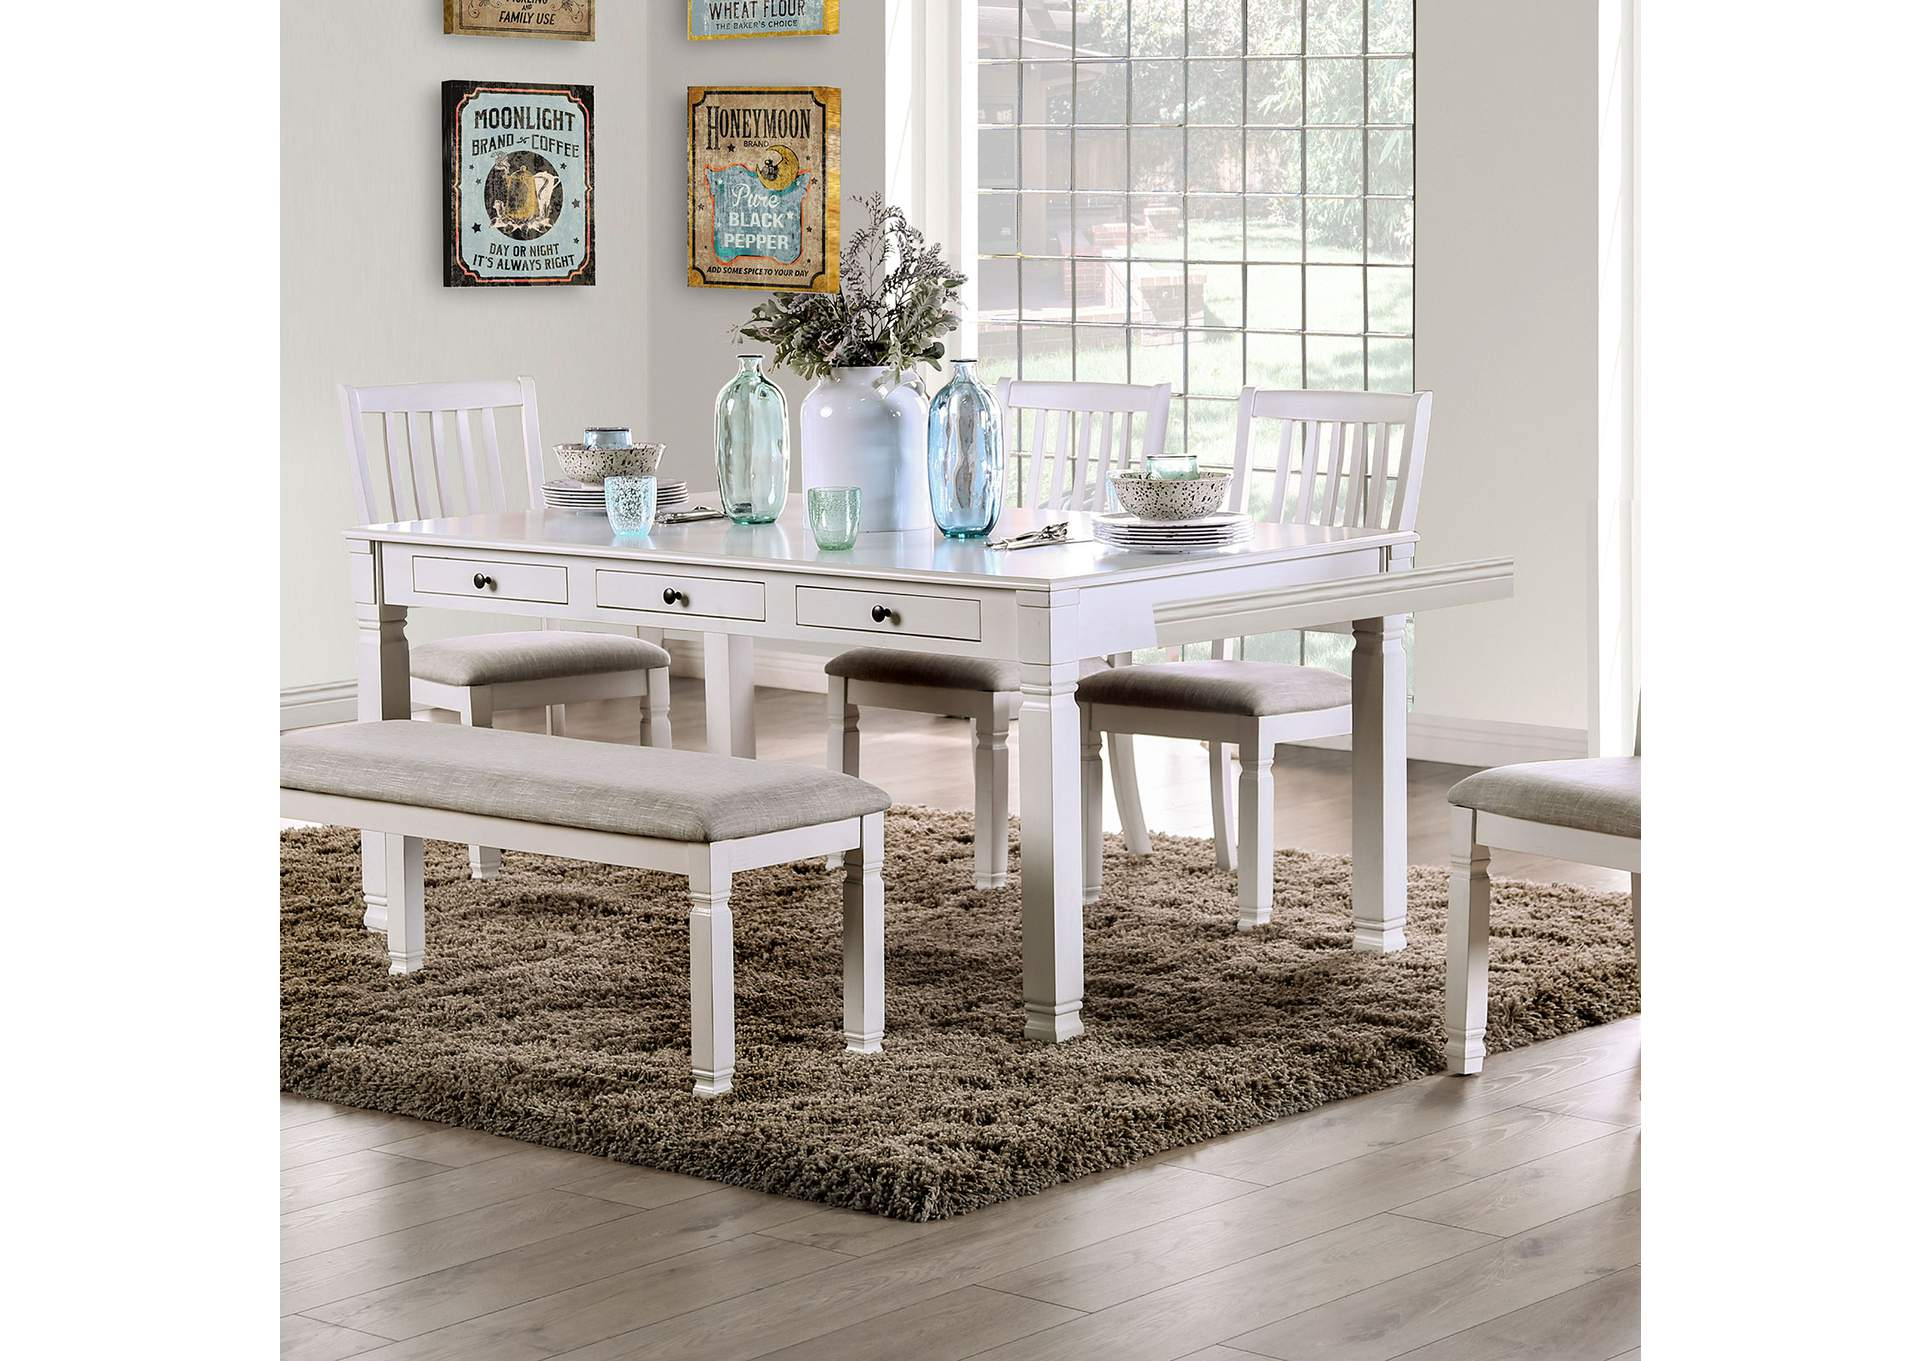 Kaliyah Antique White Dining Table w/2 Storage Drawers,Furniture of America